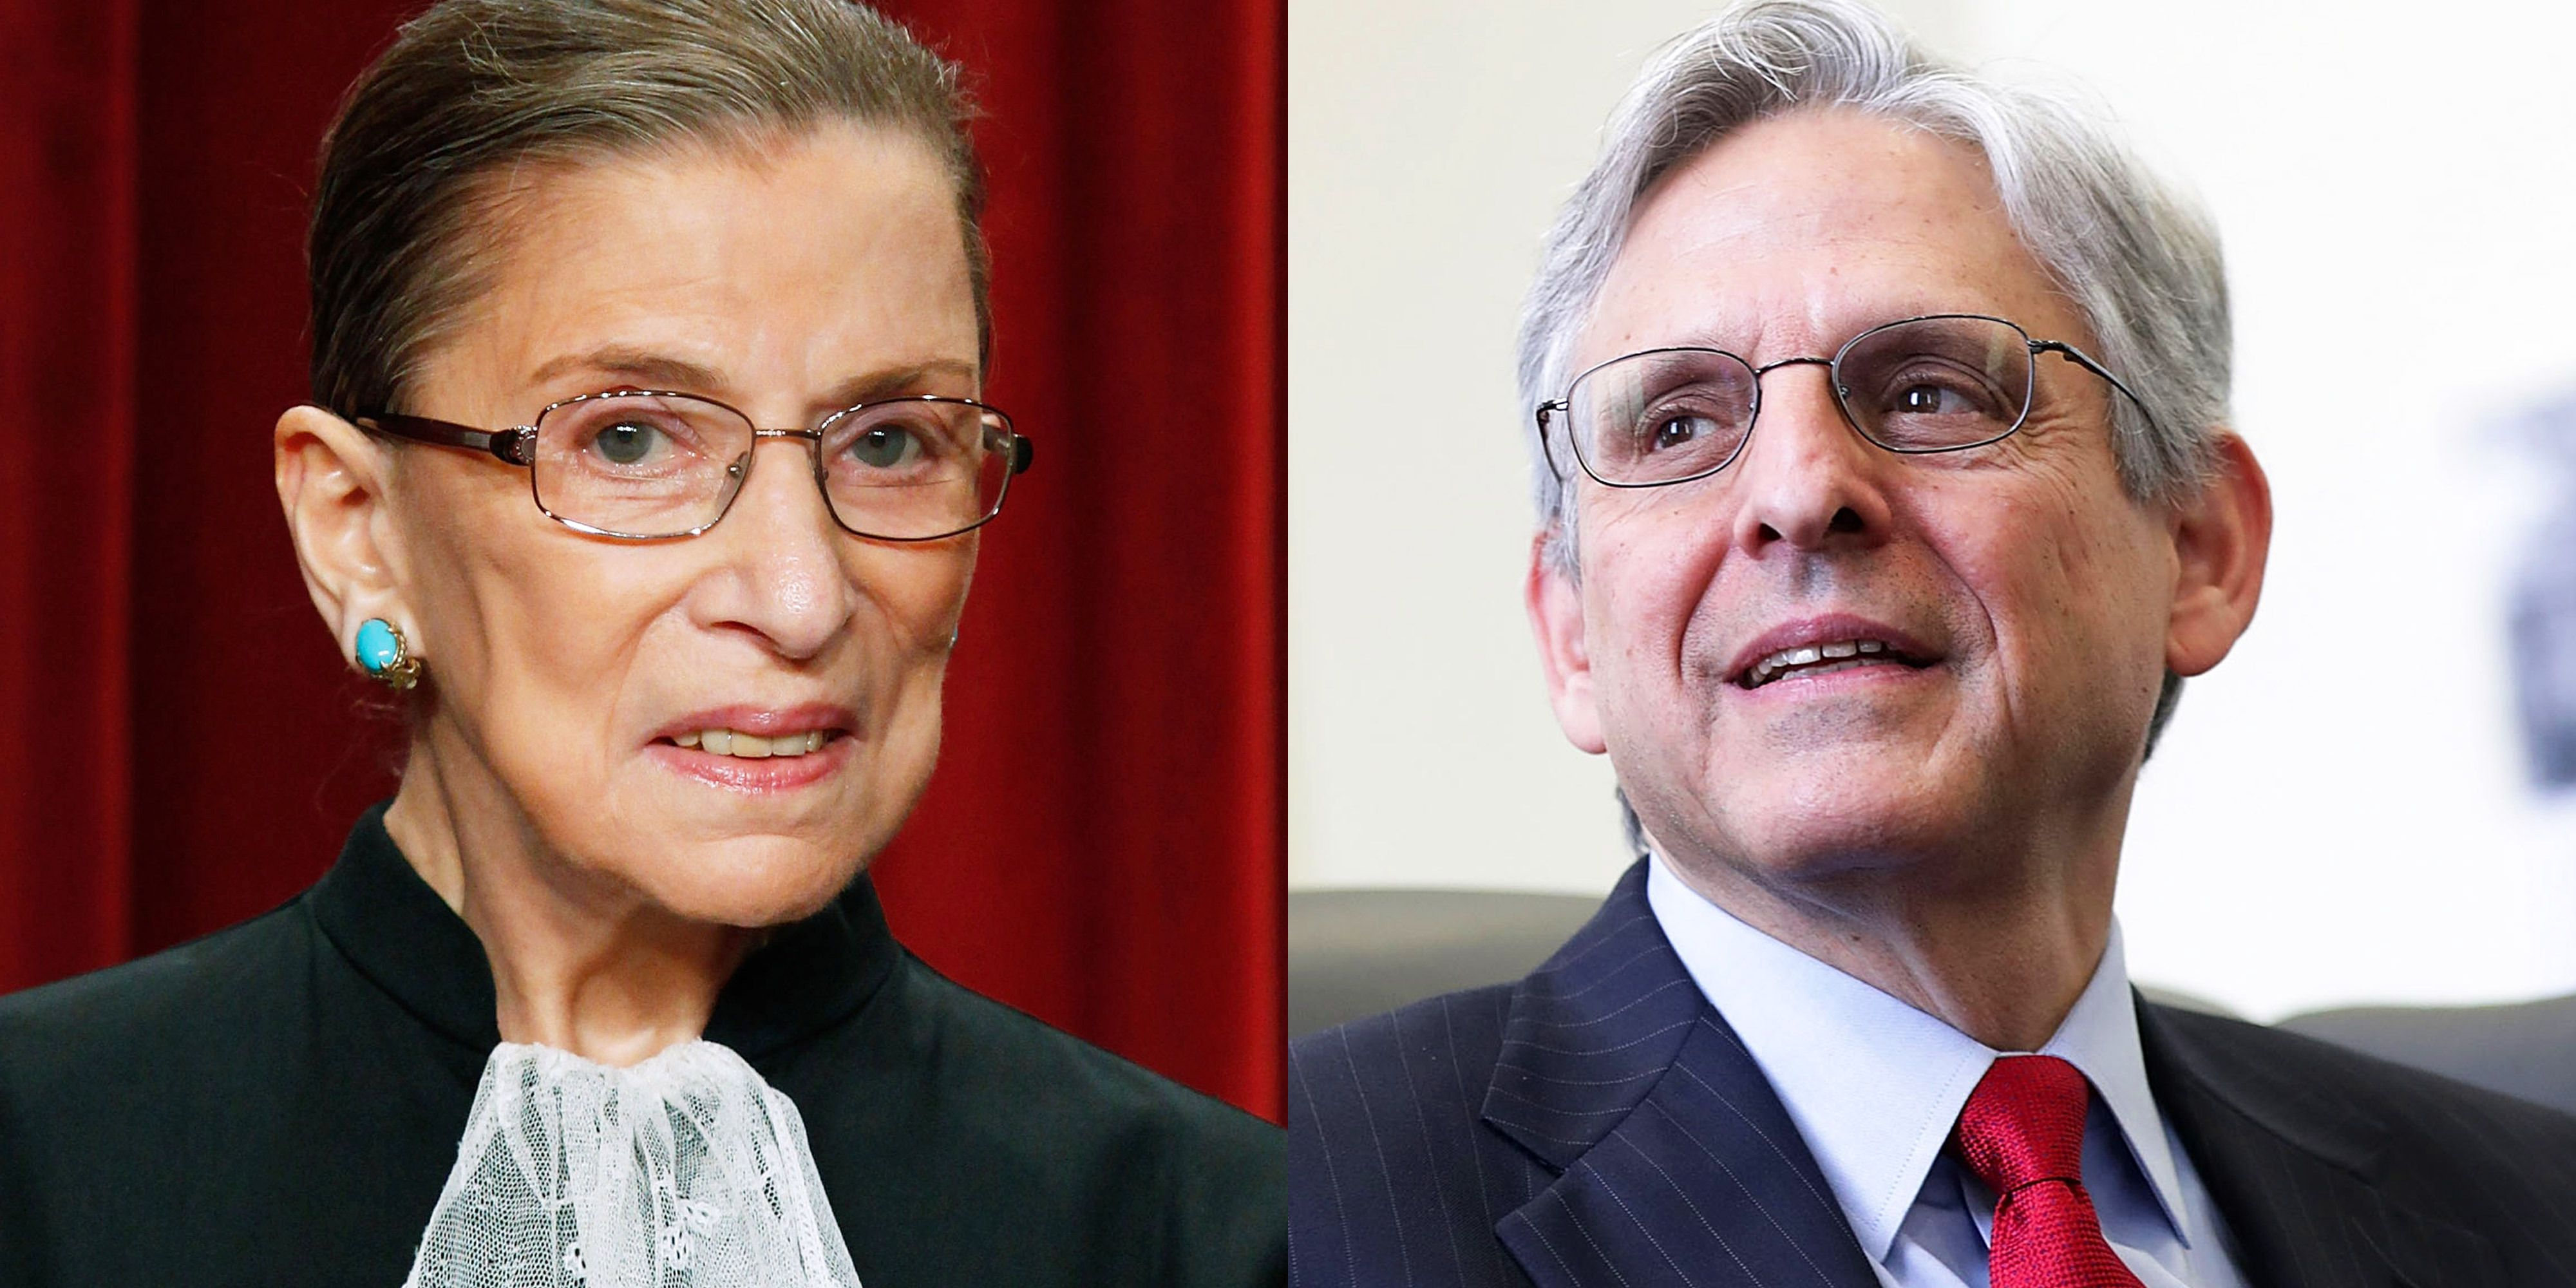 I Worked on Merrick Garland's Confirmation. Here's What I Learned